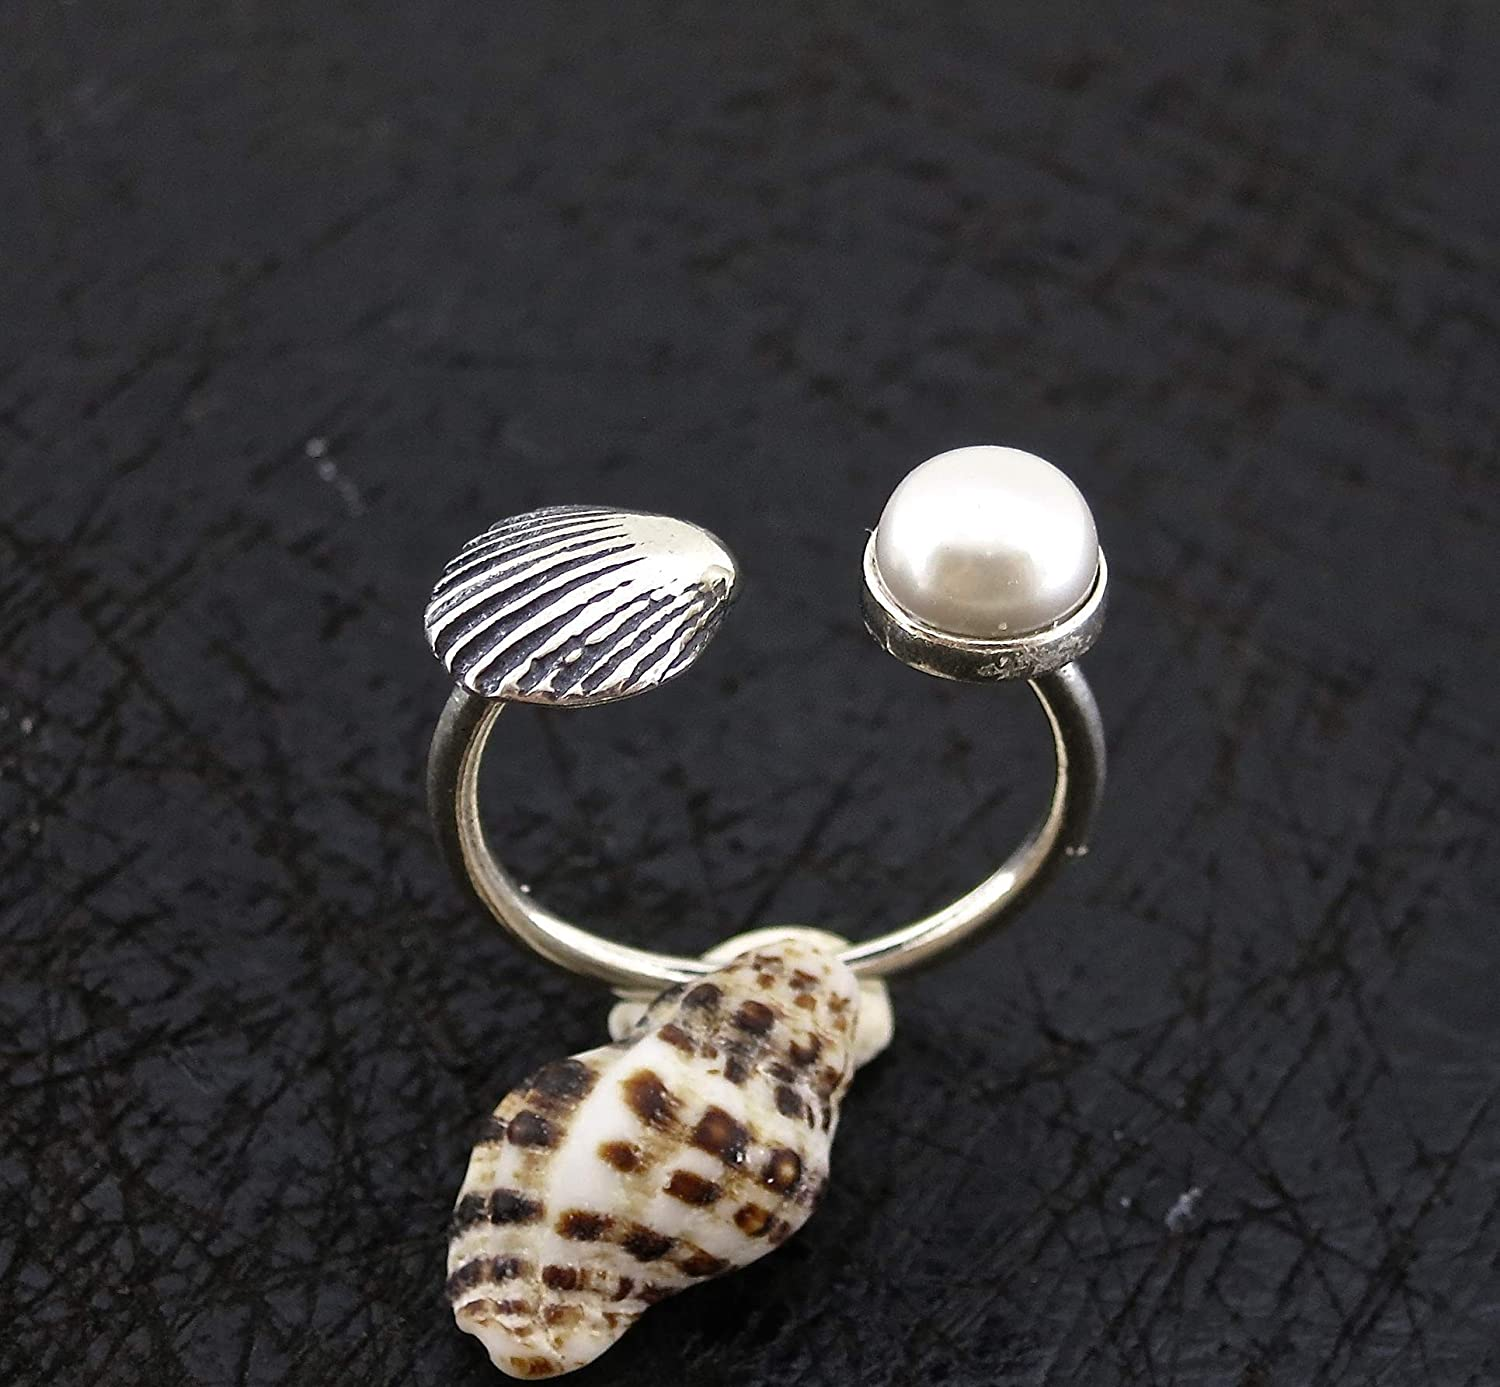 Hippie Beach Jewelry Bohemian Sterling Silver Jewelry for Women and Girls Summer Open and Adjustable Sea shell and Pearl Ring Size 7.5-9 Nautical Handmade